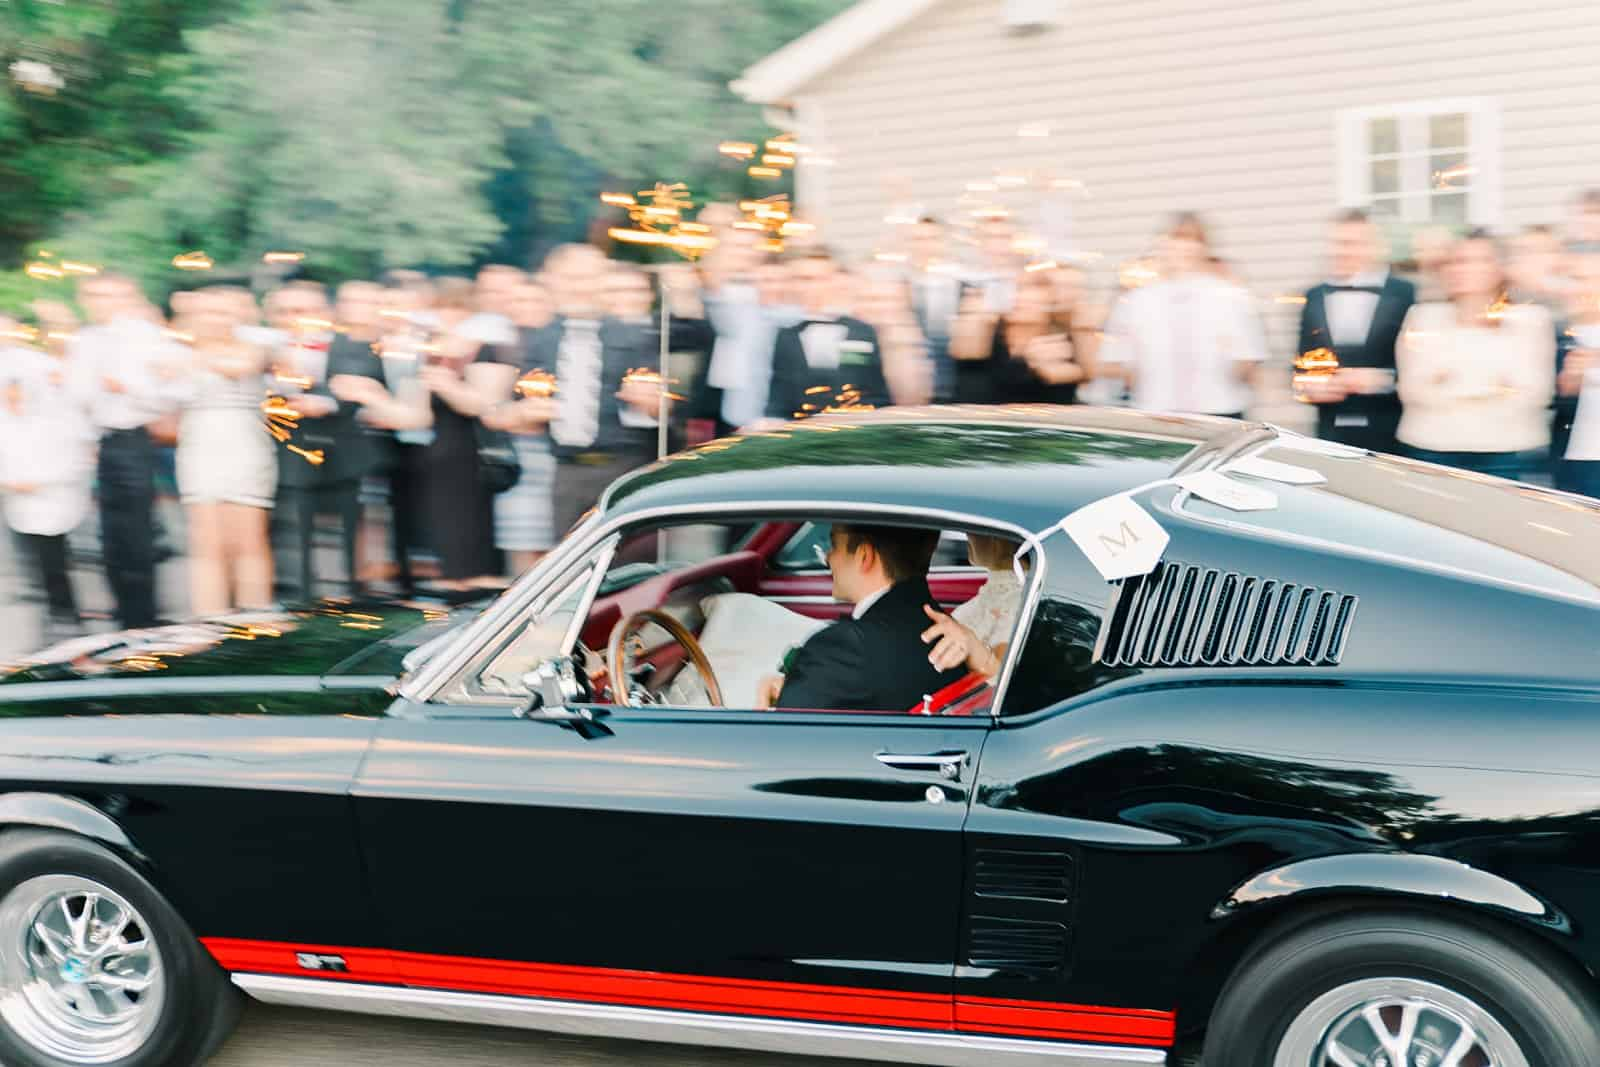 Clarion Gardens Payson Utah Wedding, bride and groom drive away in black vintage Mustang convertible reception getaway car